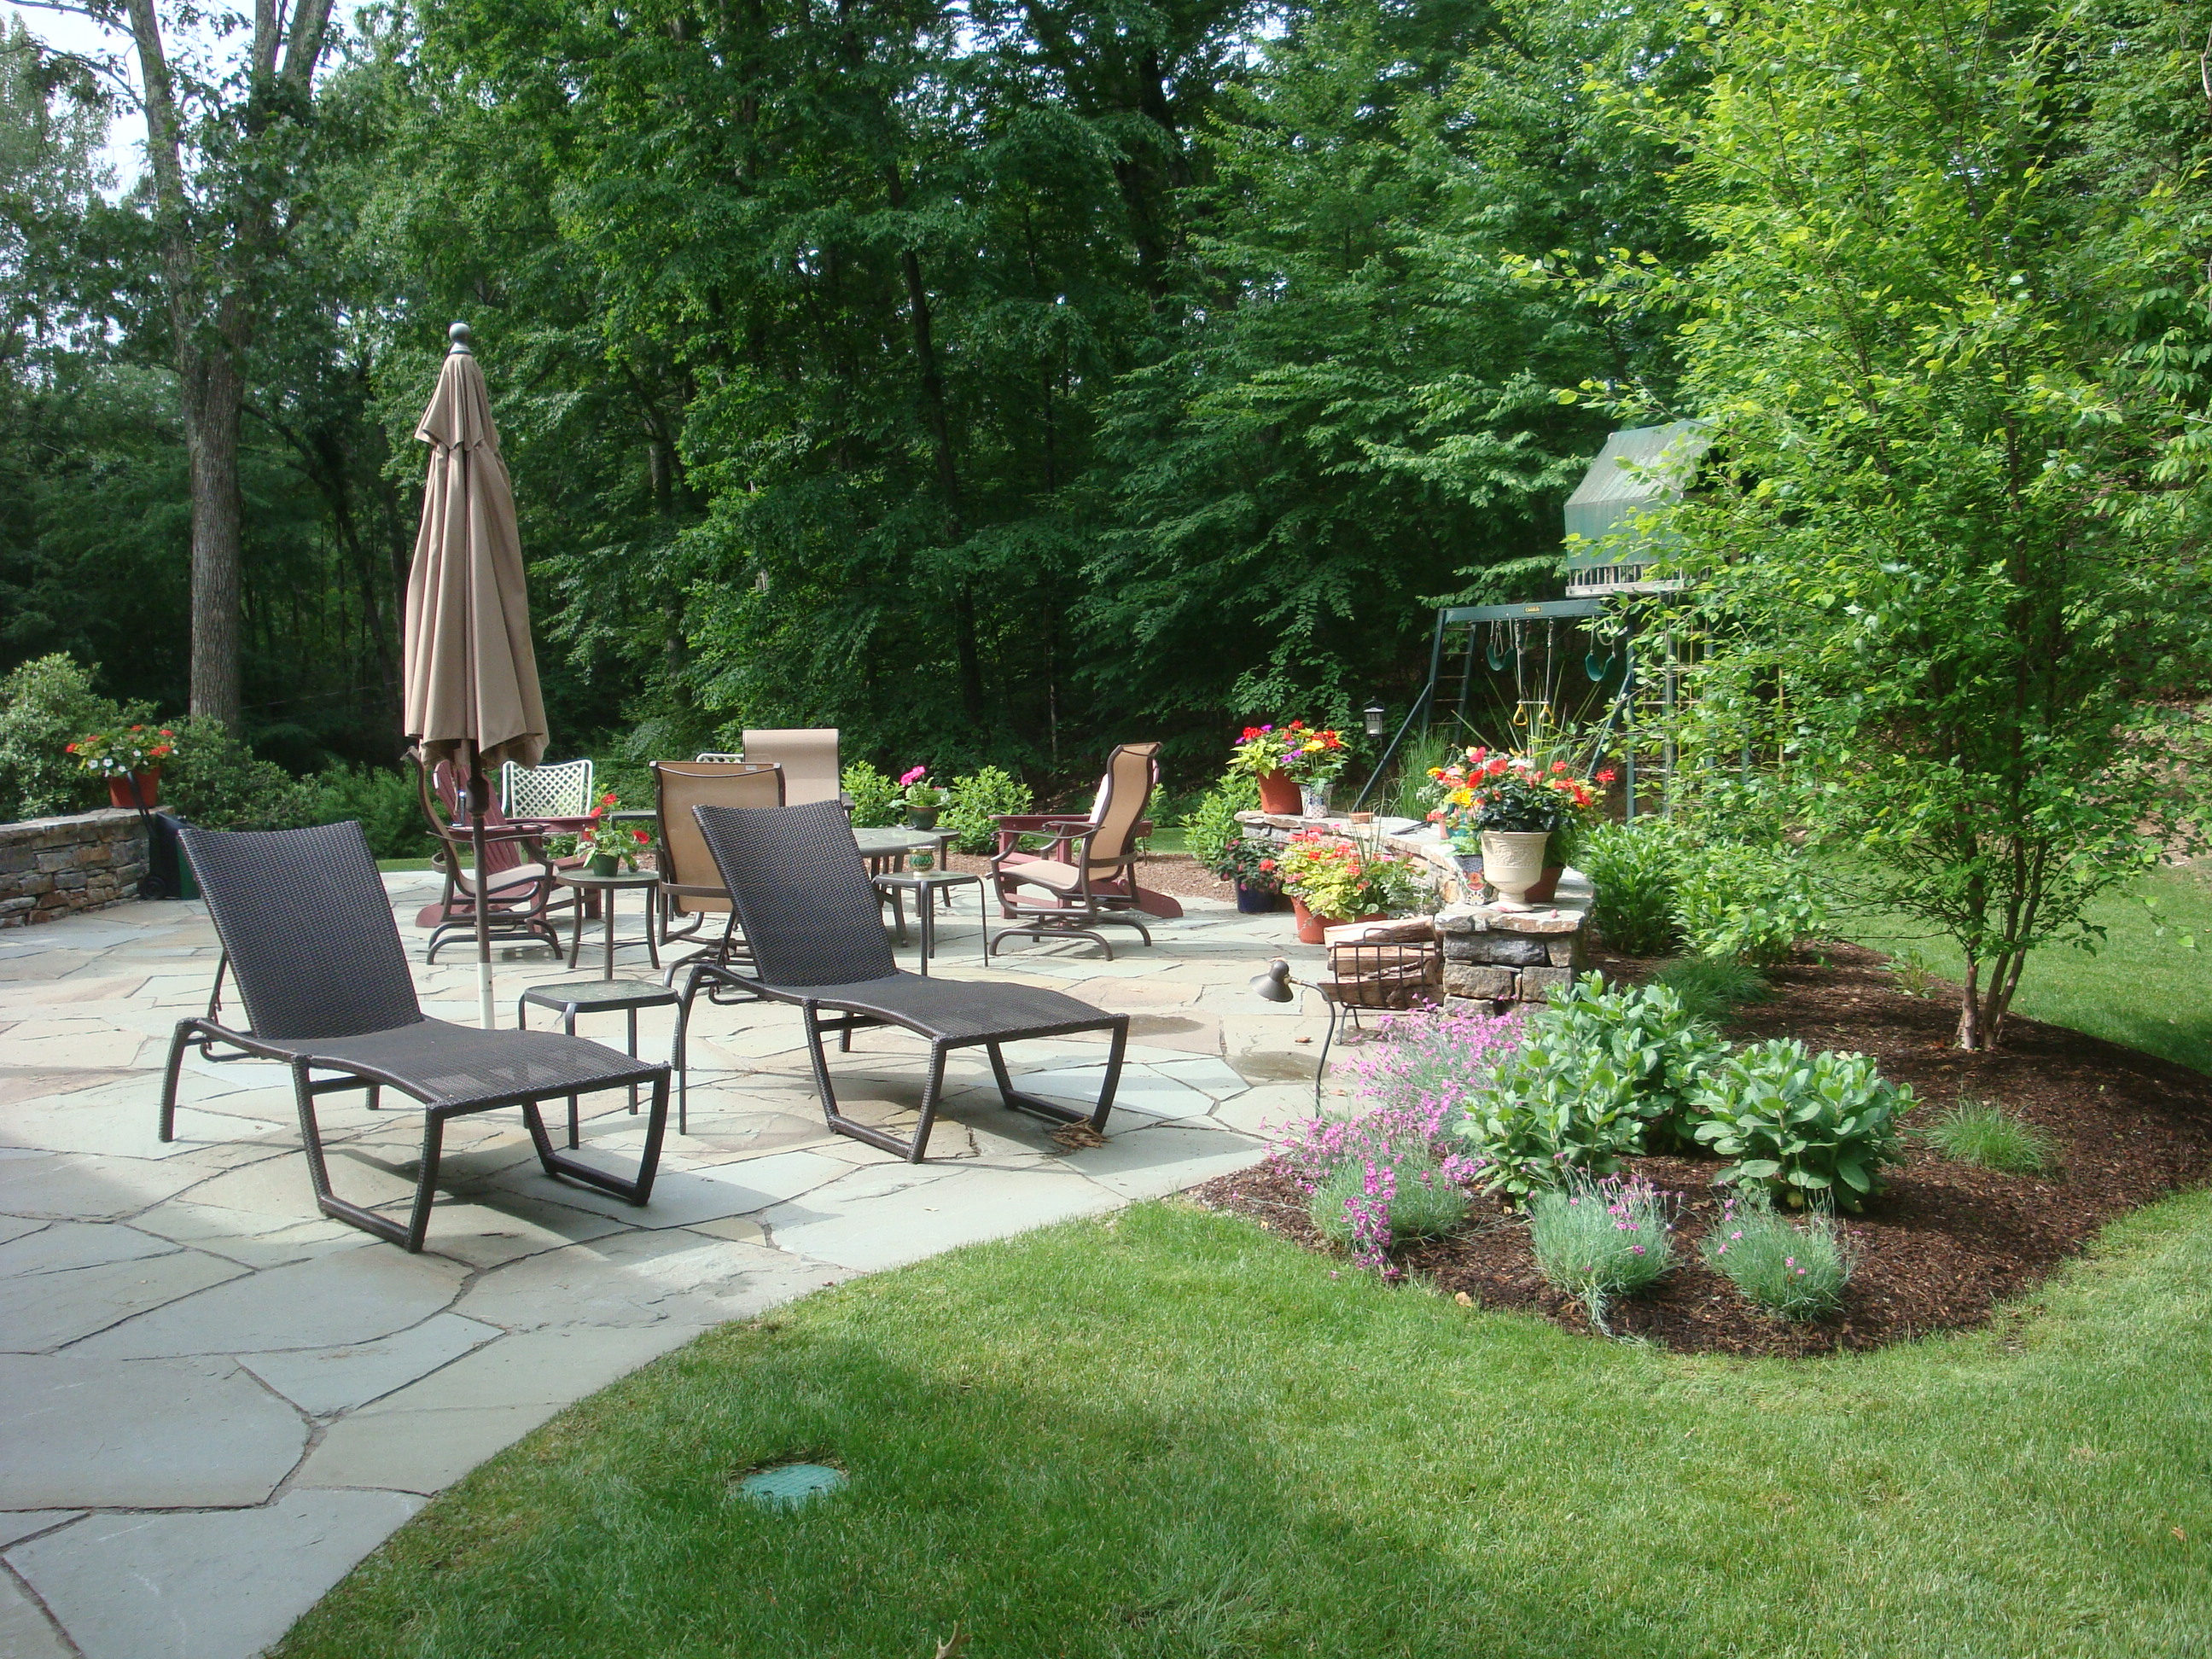 Patios garden designers roundtable for Outdoor landscape design